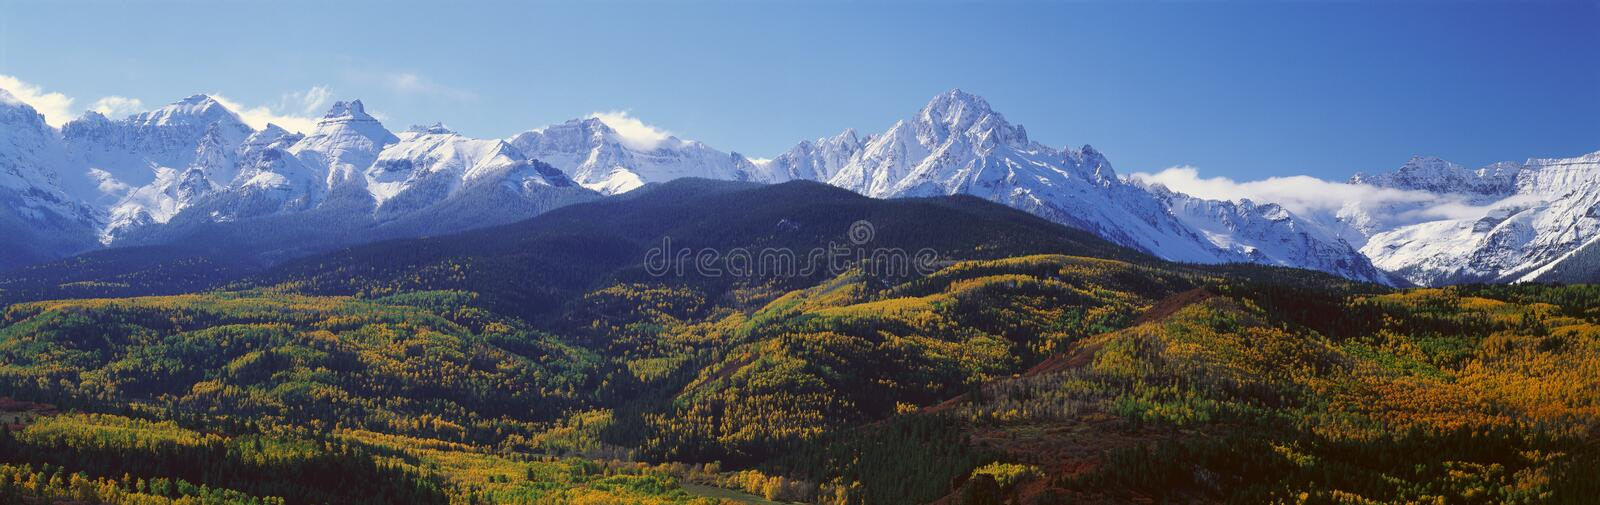 Wilson Peak, San Juan National Forest, Colorado imagens de stock royalty free